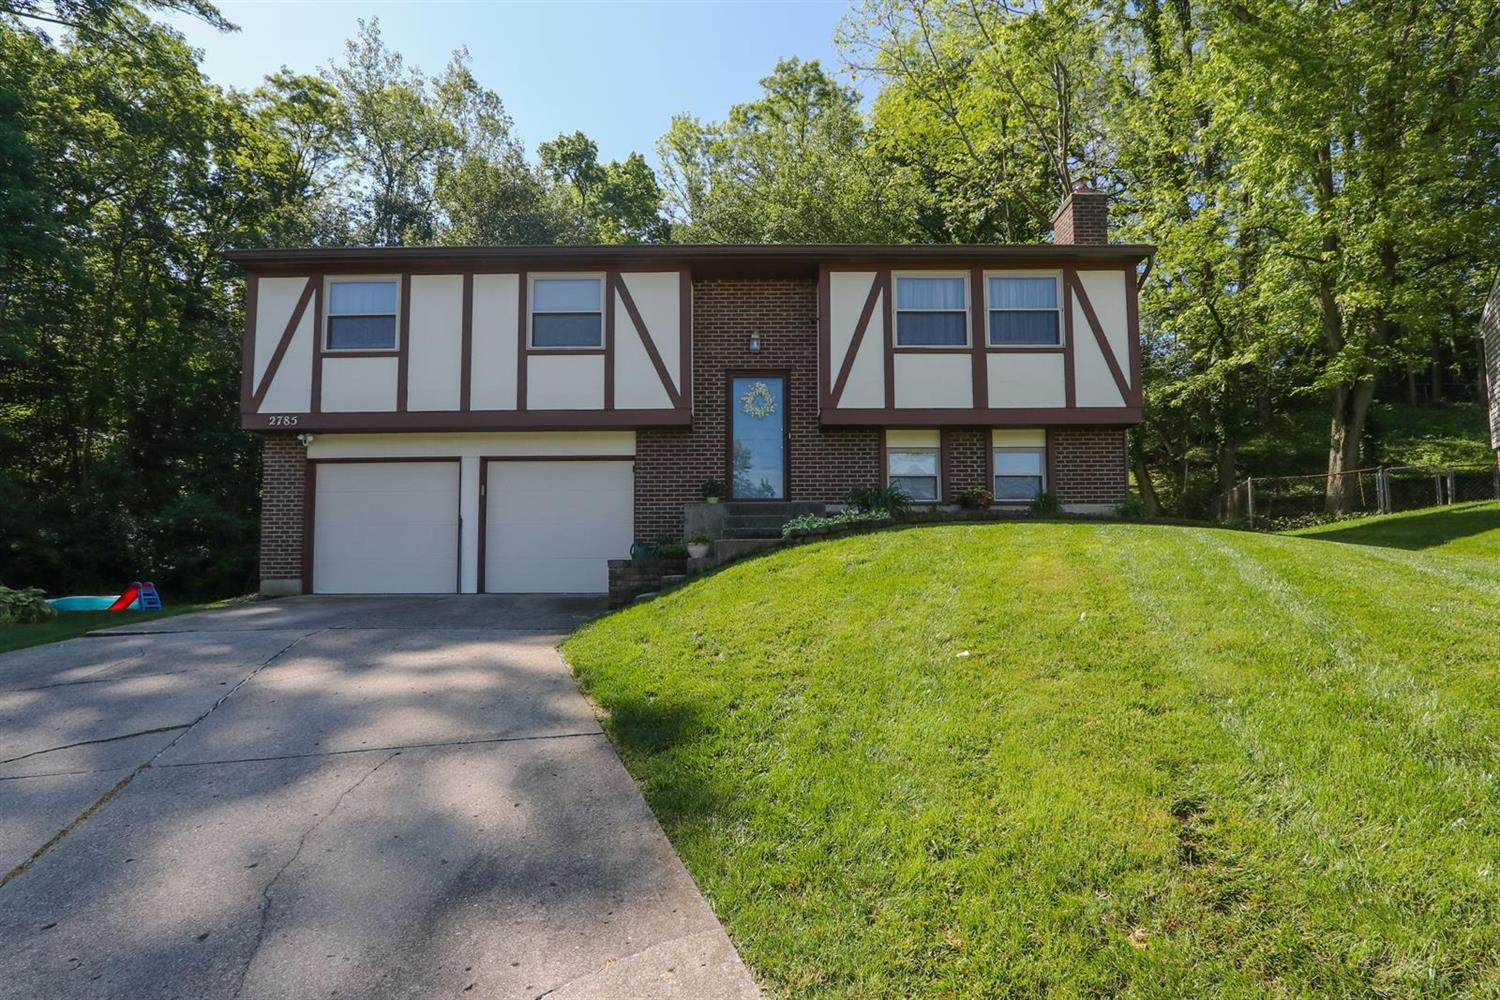 Property for sale at 2785 Maple Tree Court, Reading,  Ohio 45236